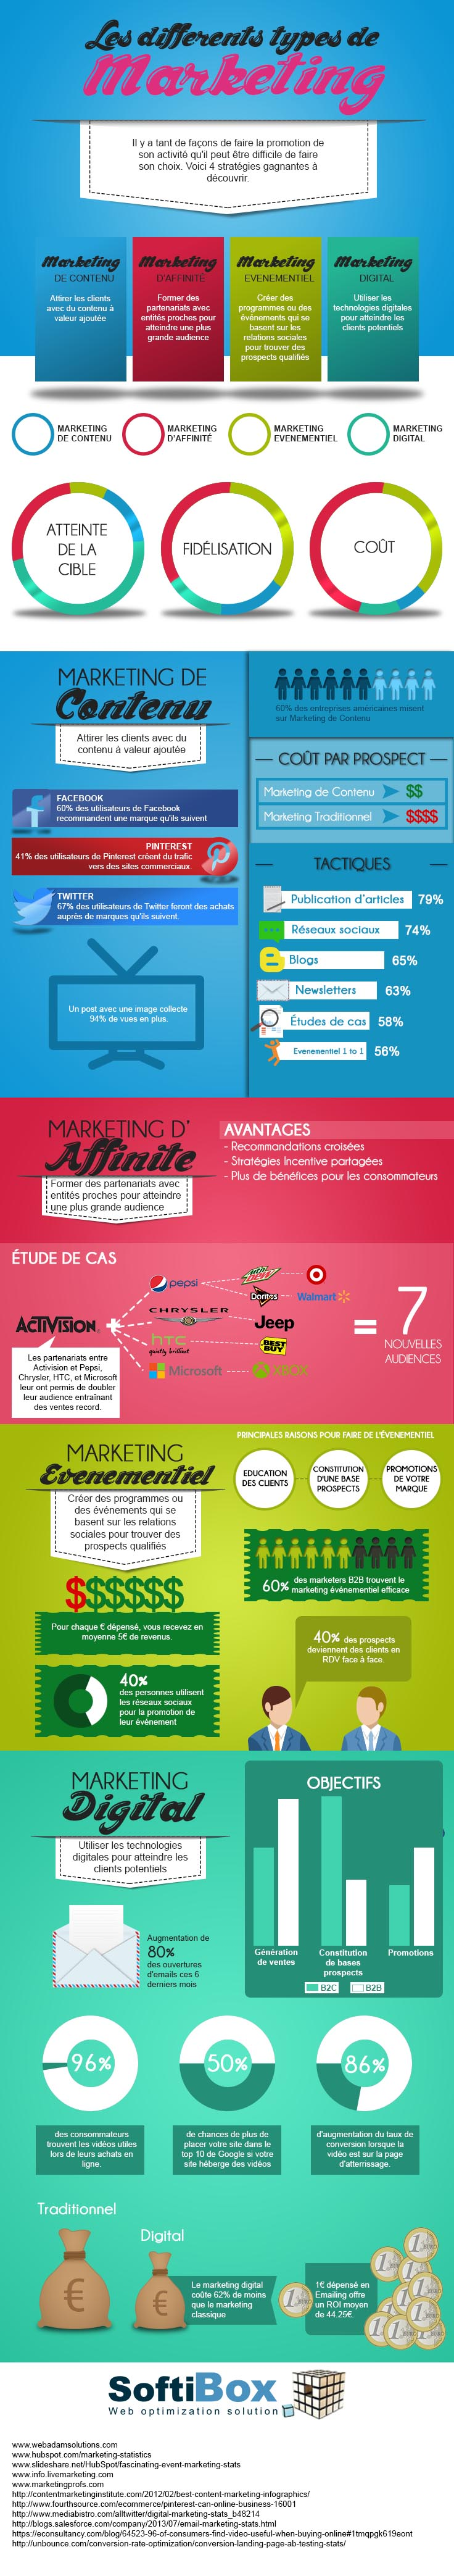 [Infographie] Les différents types de marketing